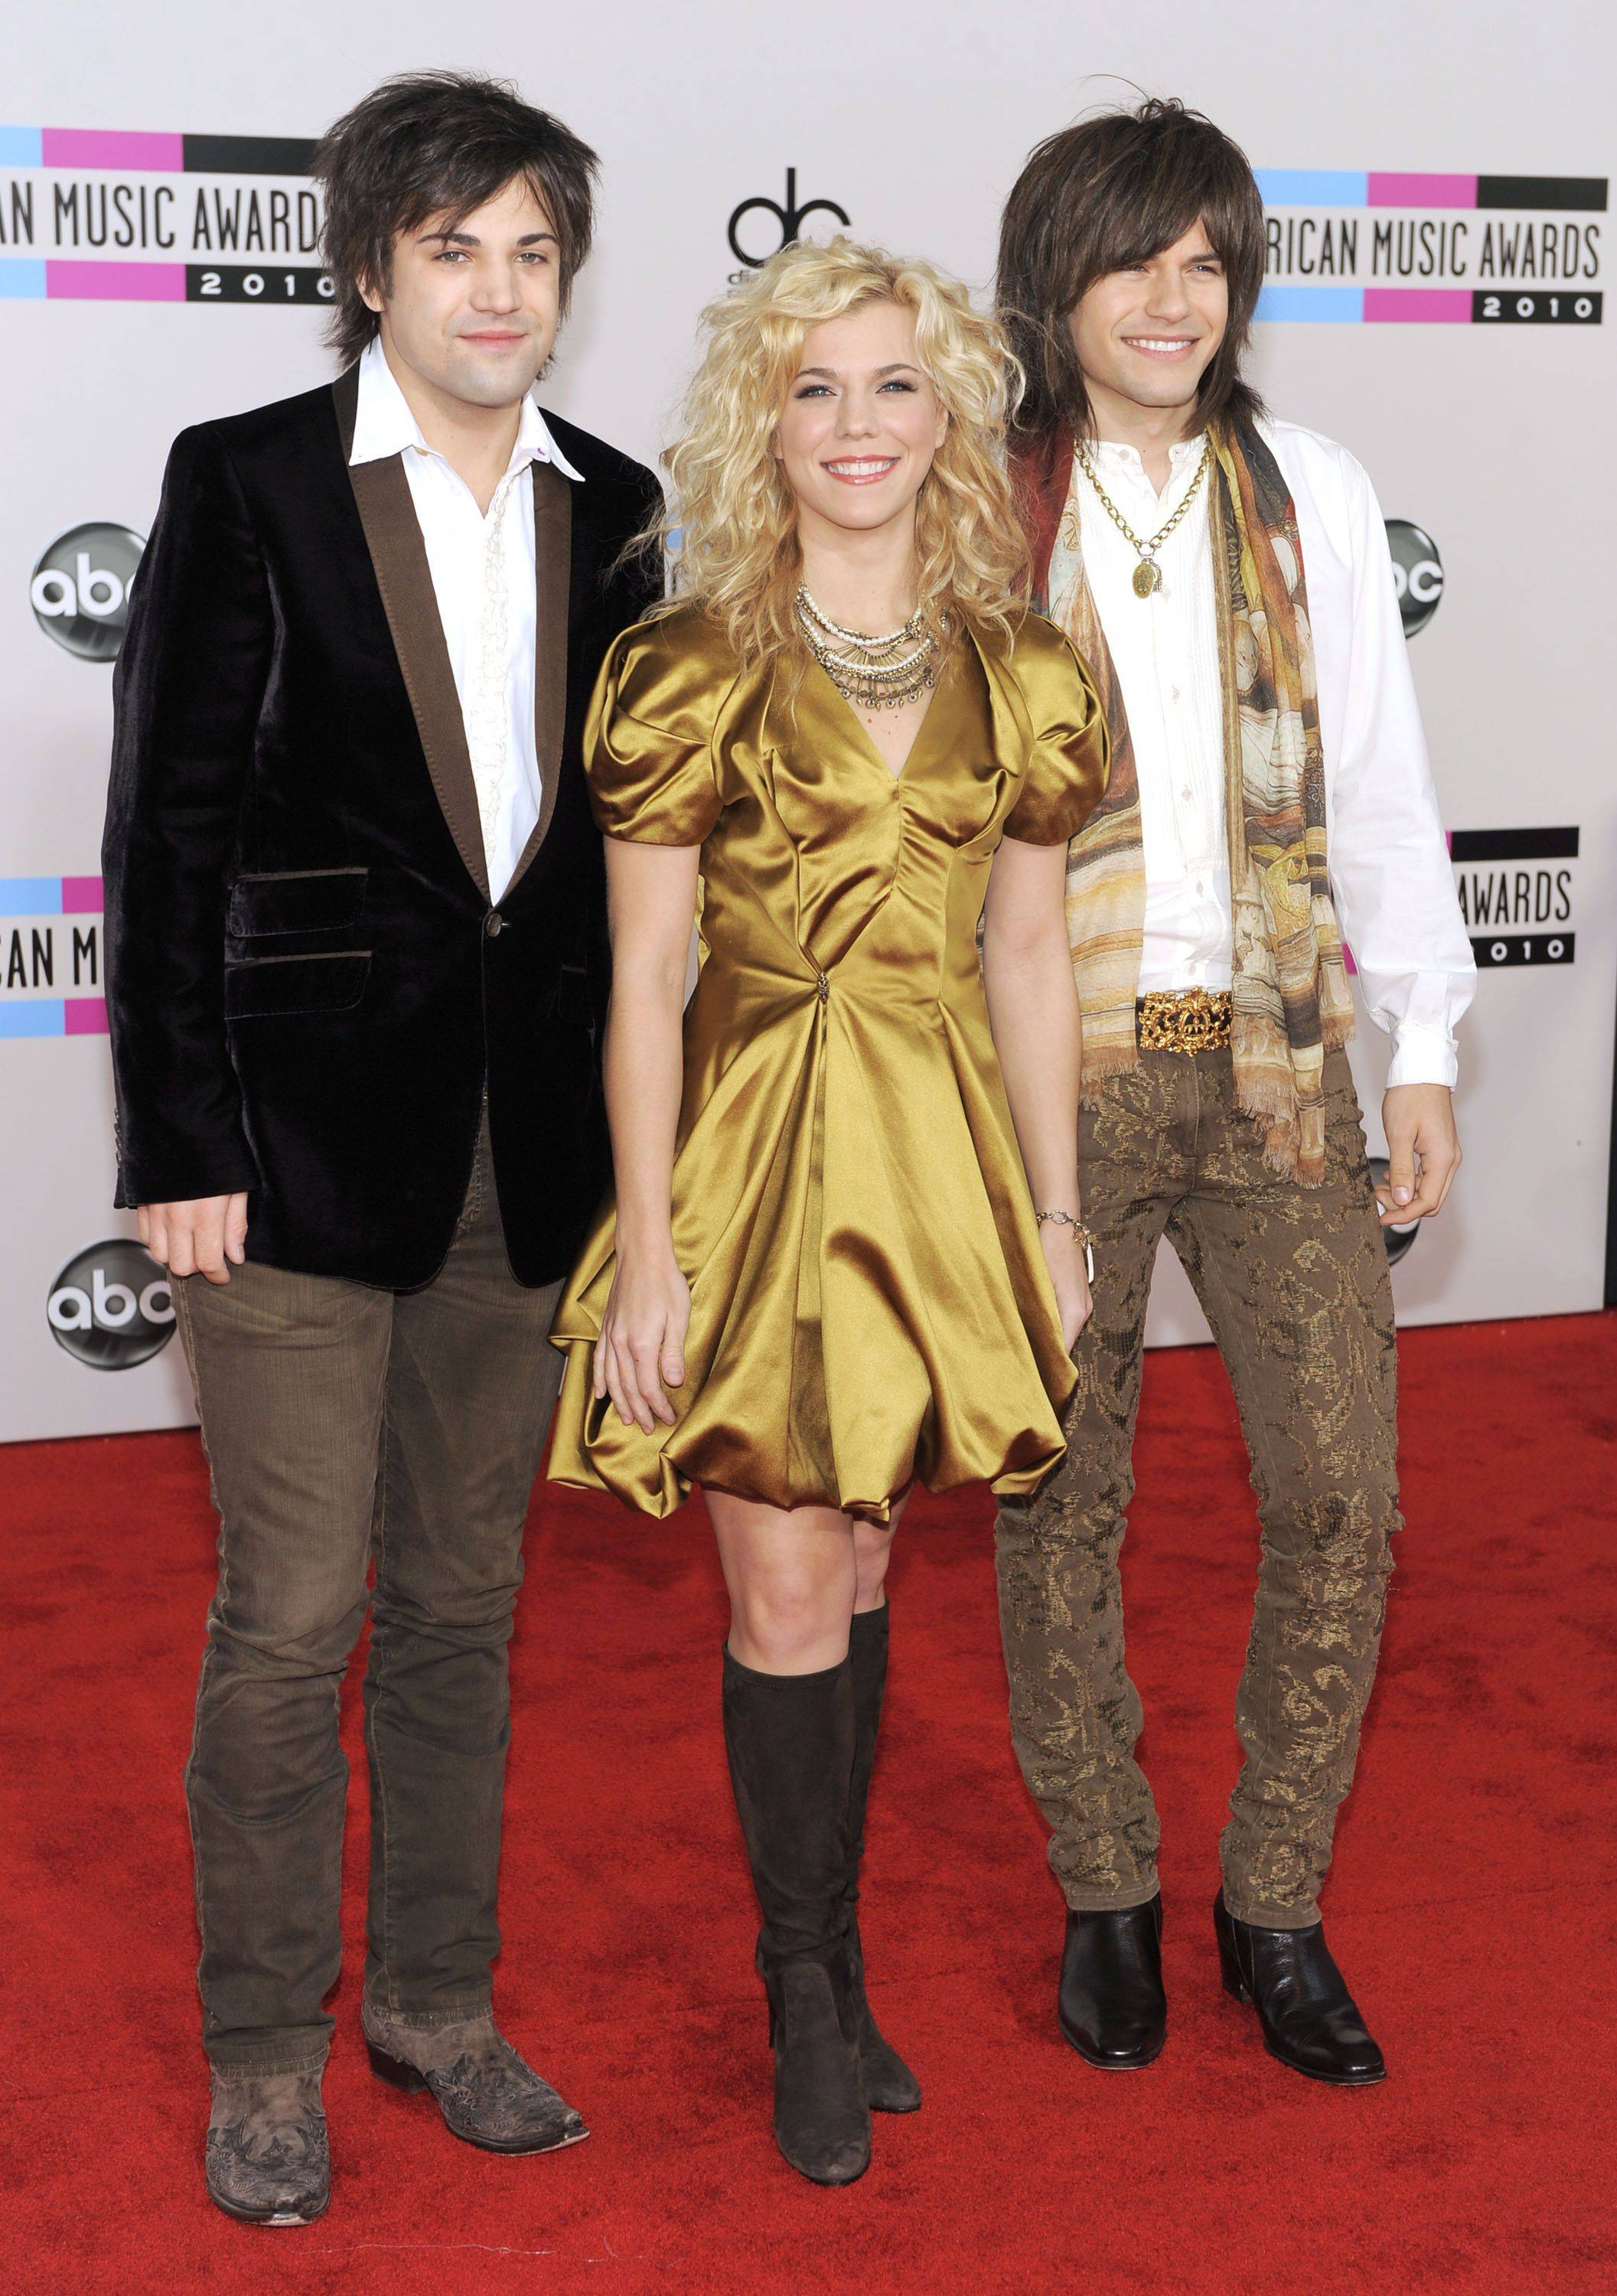 The Band Perry, from left, Neil Perry, Kimberly Perry, and Reid Perry arrive at the 38th Annual American Music Awards. The band would later present an award.